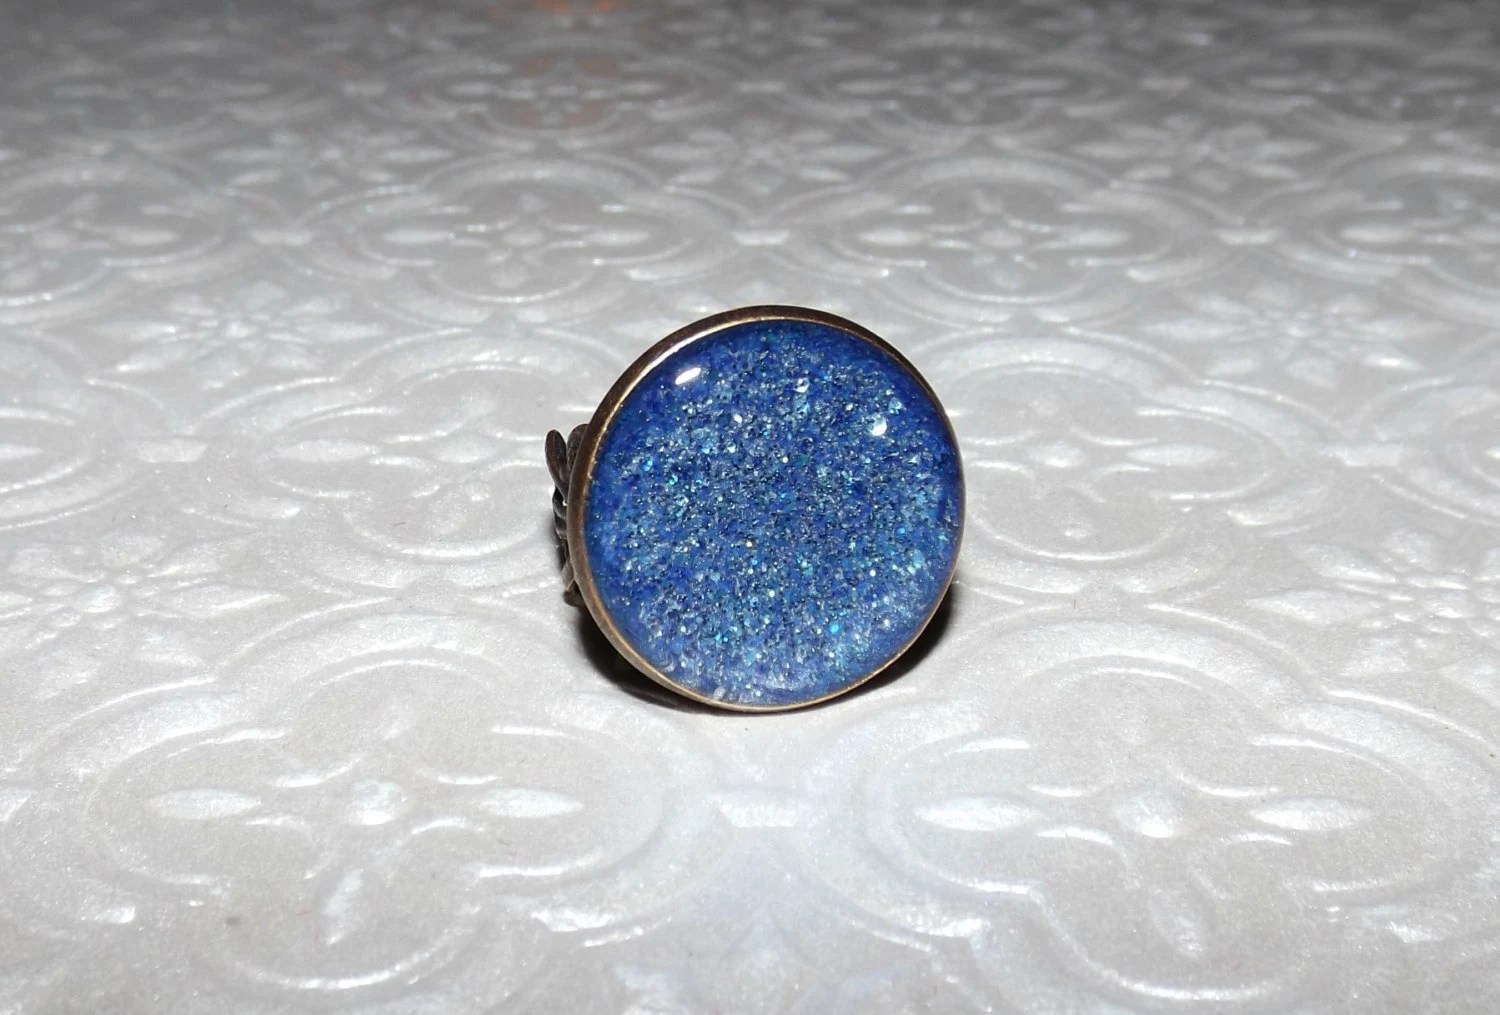 Blue Glitter Sand Stone Marble Ring By GlassByPriscilla On